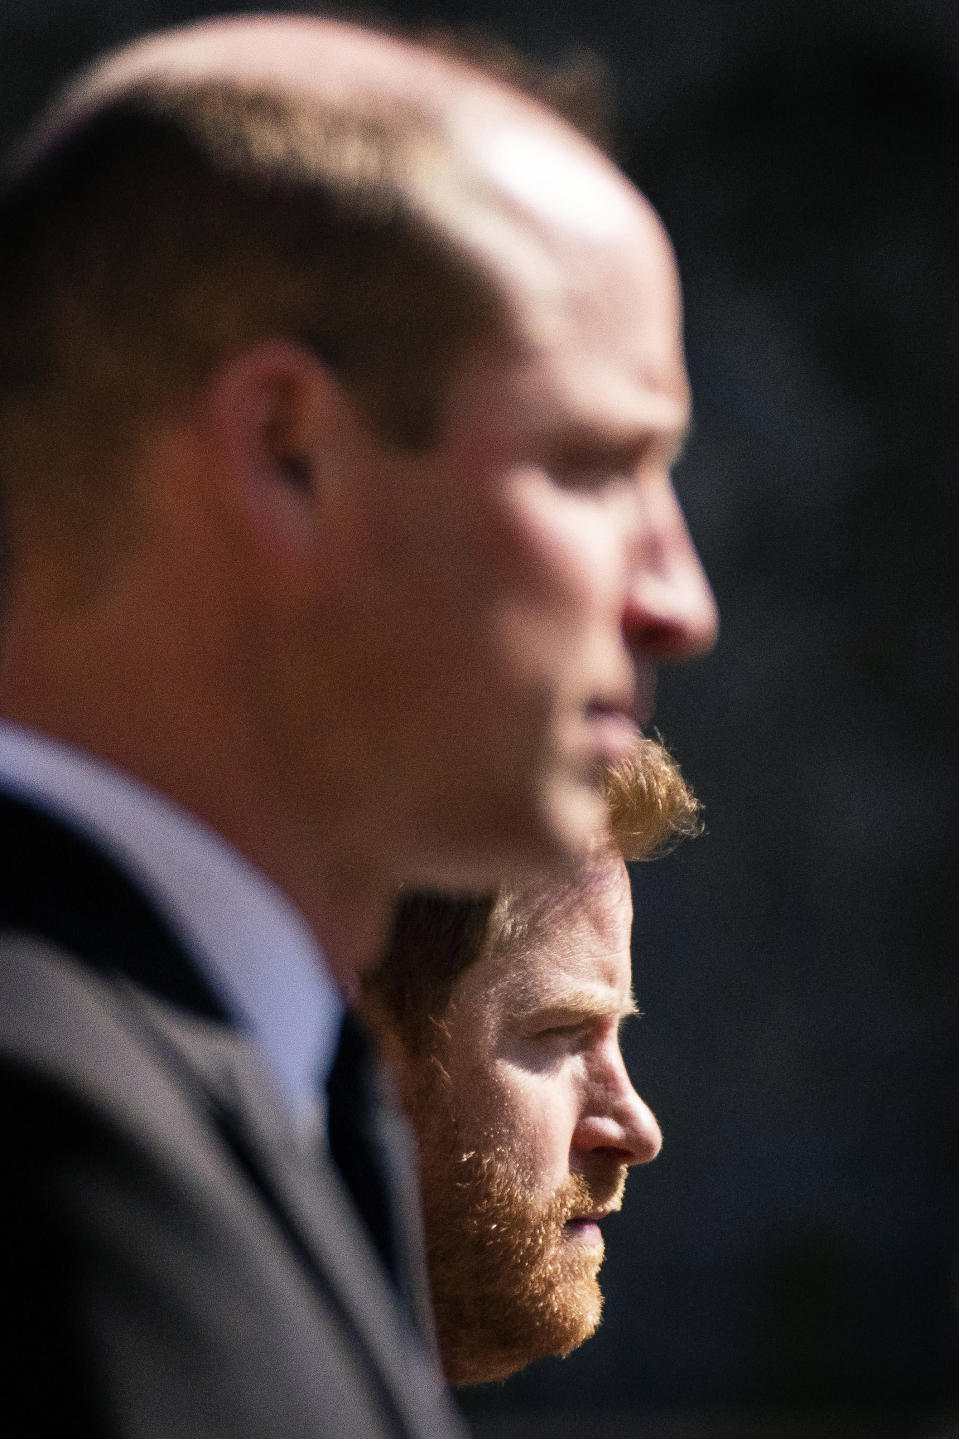 Prince William, the Duke of Cambridge and Prince Harry walk in the procession, ahead of Britain Prince Philip's funeral at Windsor Castle, Windsor, England, Saturday April 17, 2021. Prince Philip died April 9 at the age of 99 after 73 years of marriage to Britain's Queen Elizabeth II. (Victoria Jones/Pool via AP)